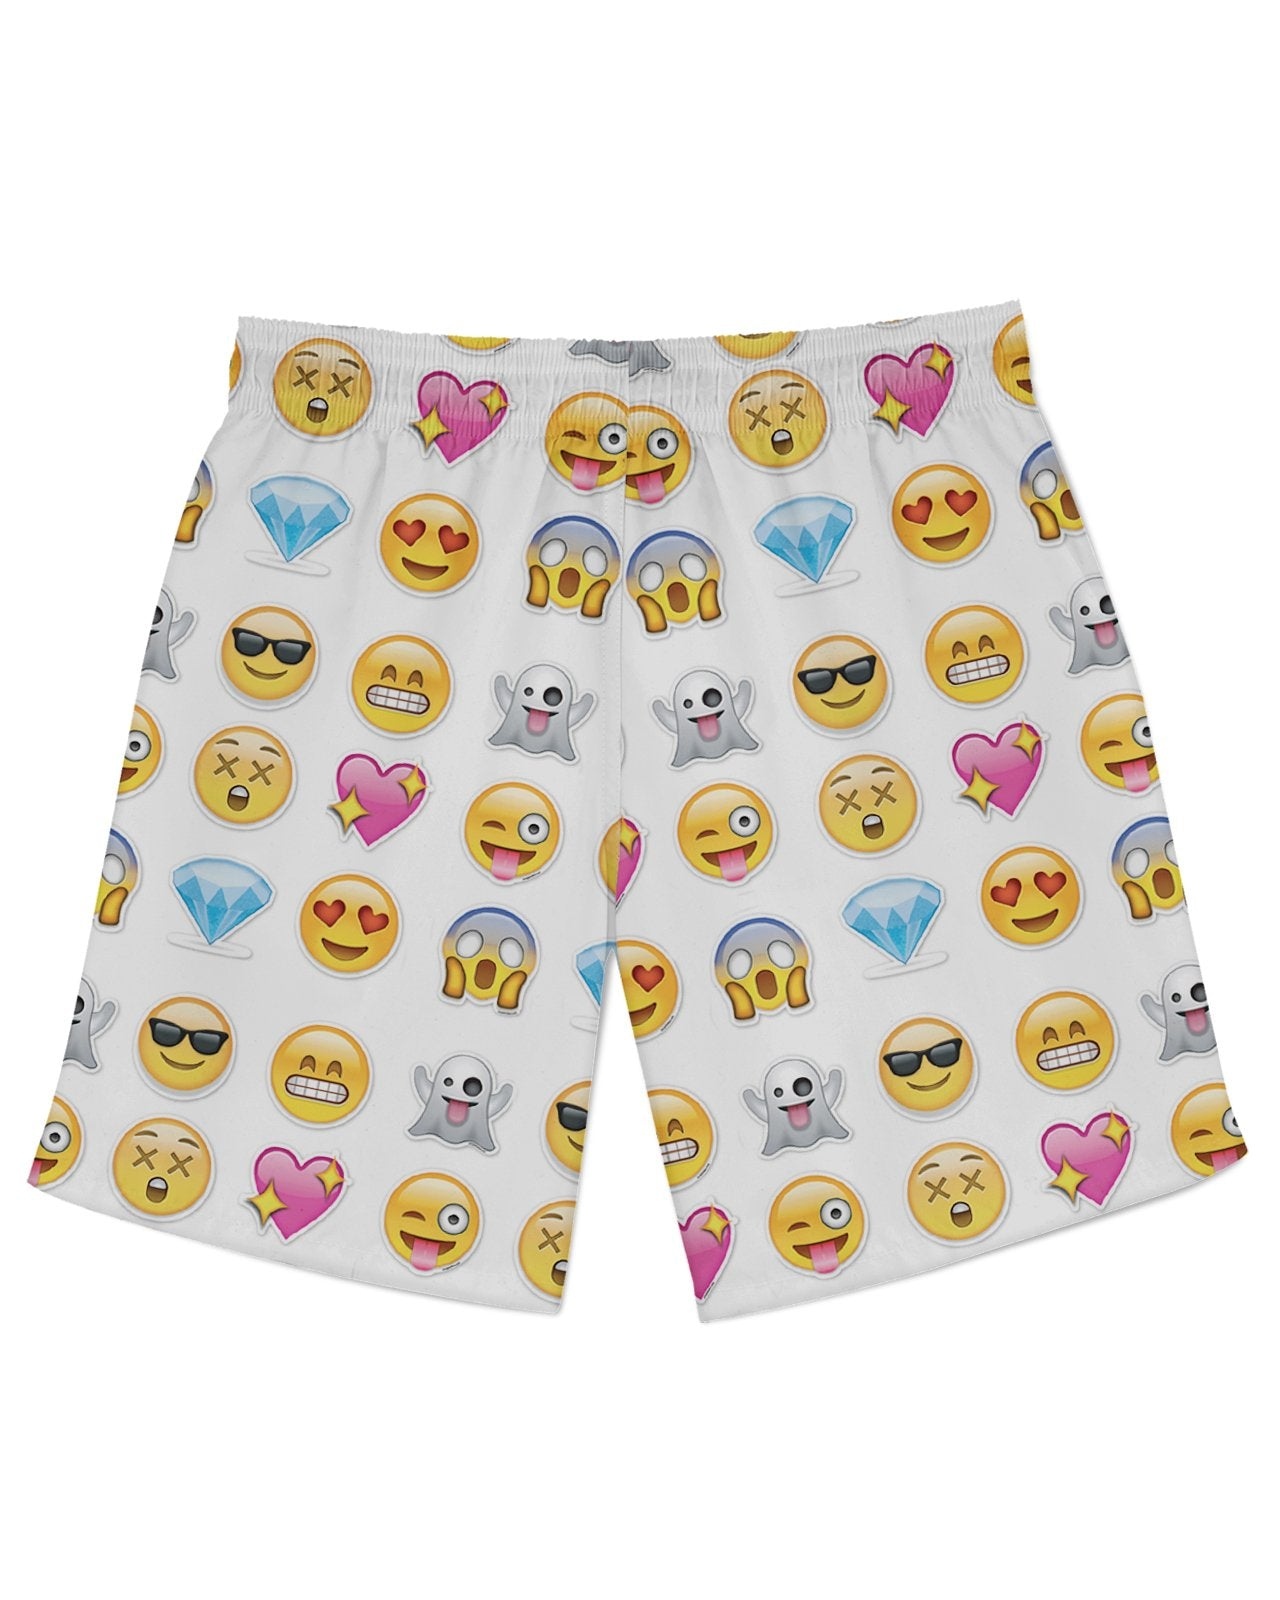 Emoticons Athletic Shorts